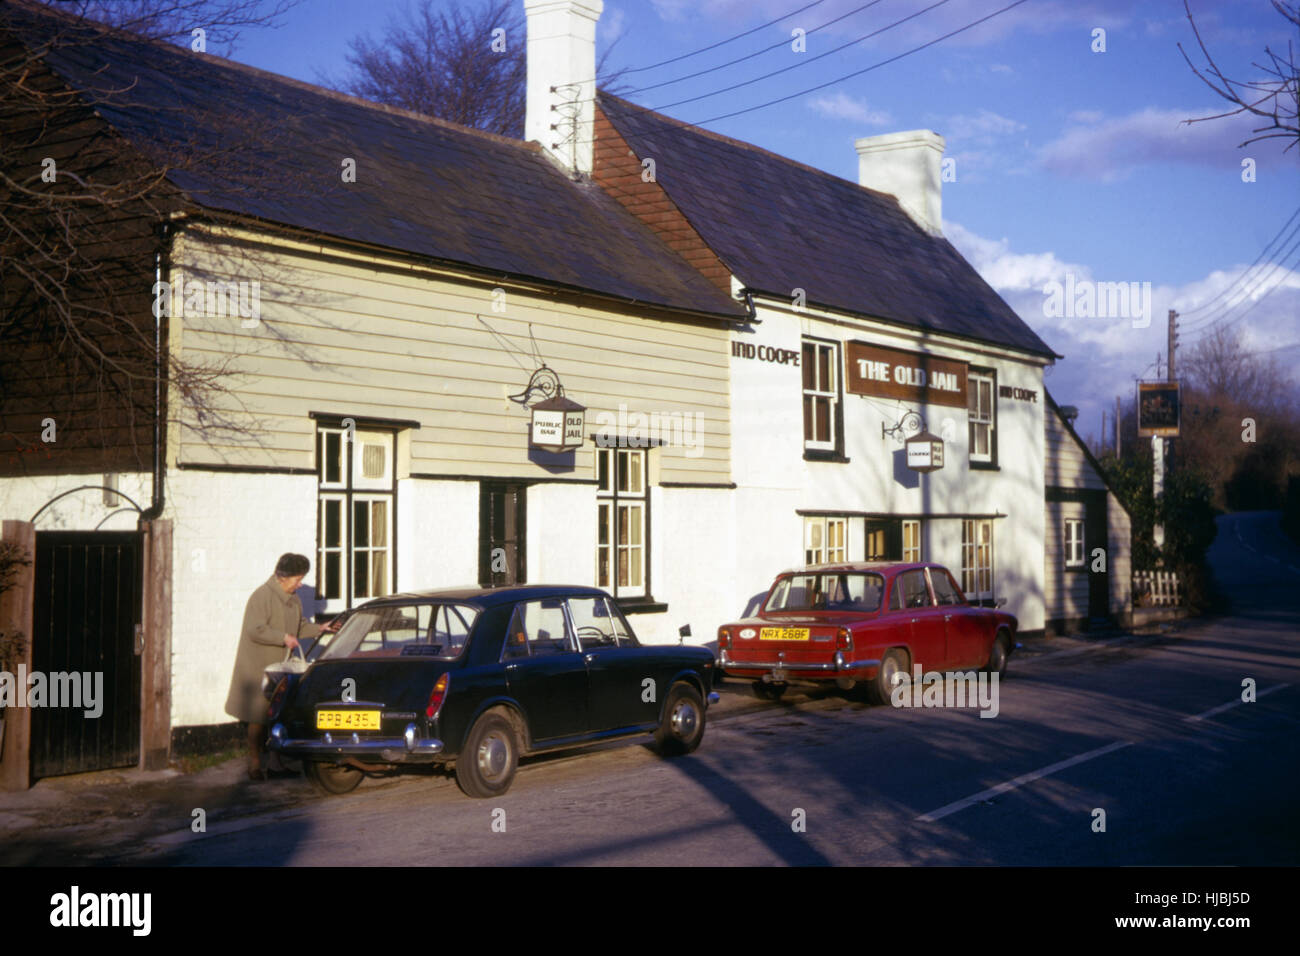 The Old Jail pub, Downe, Kent, 1974 - Stock Image